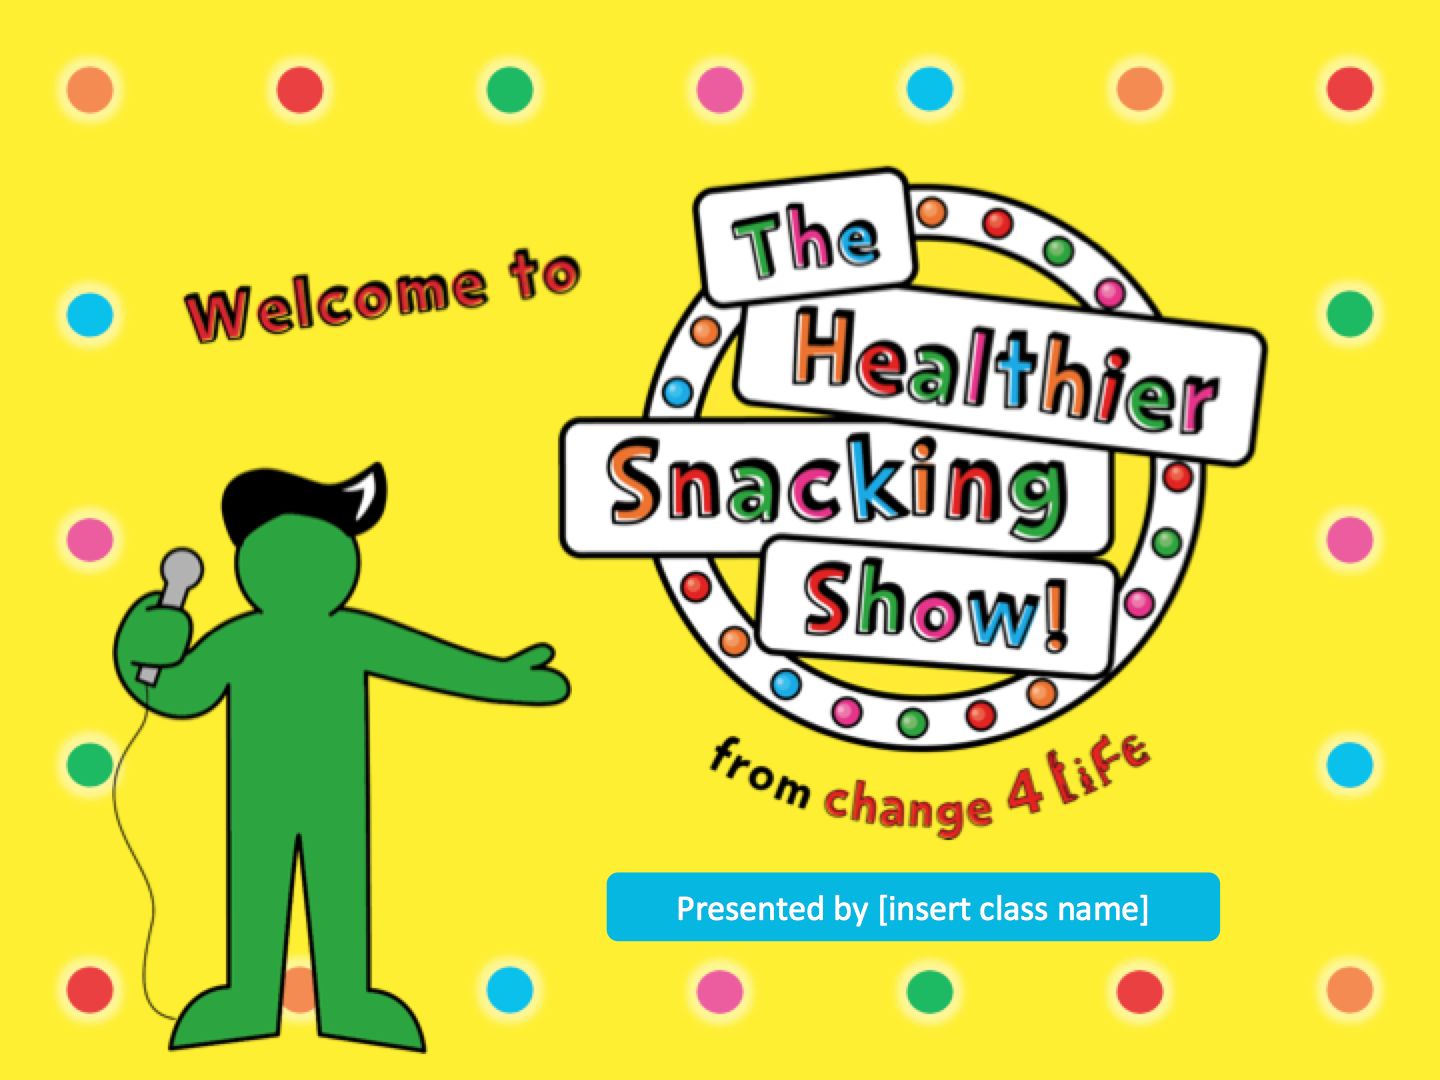 The Healthier Snacking Show: lower KS2 PowerPoint